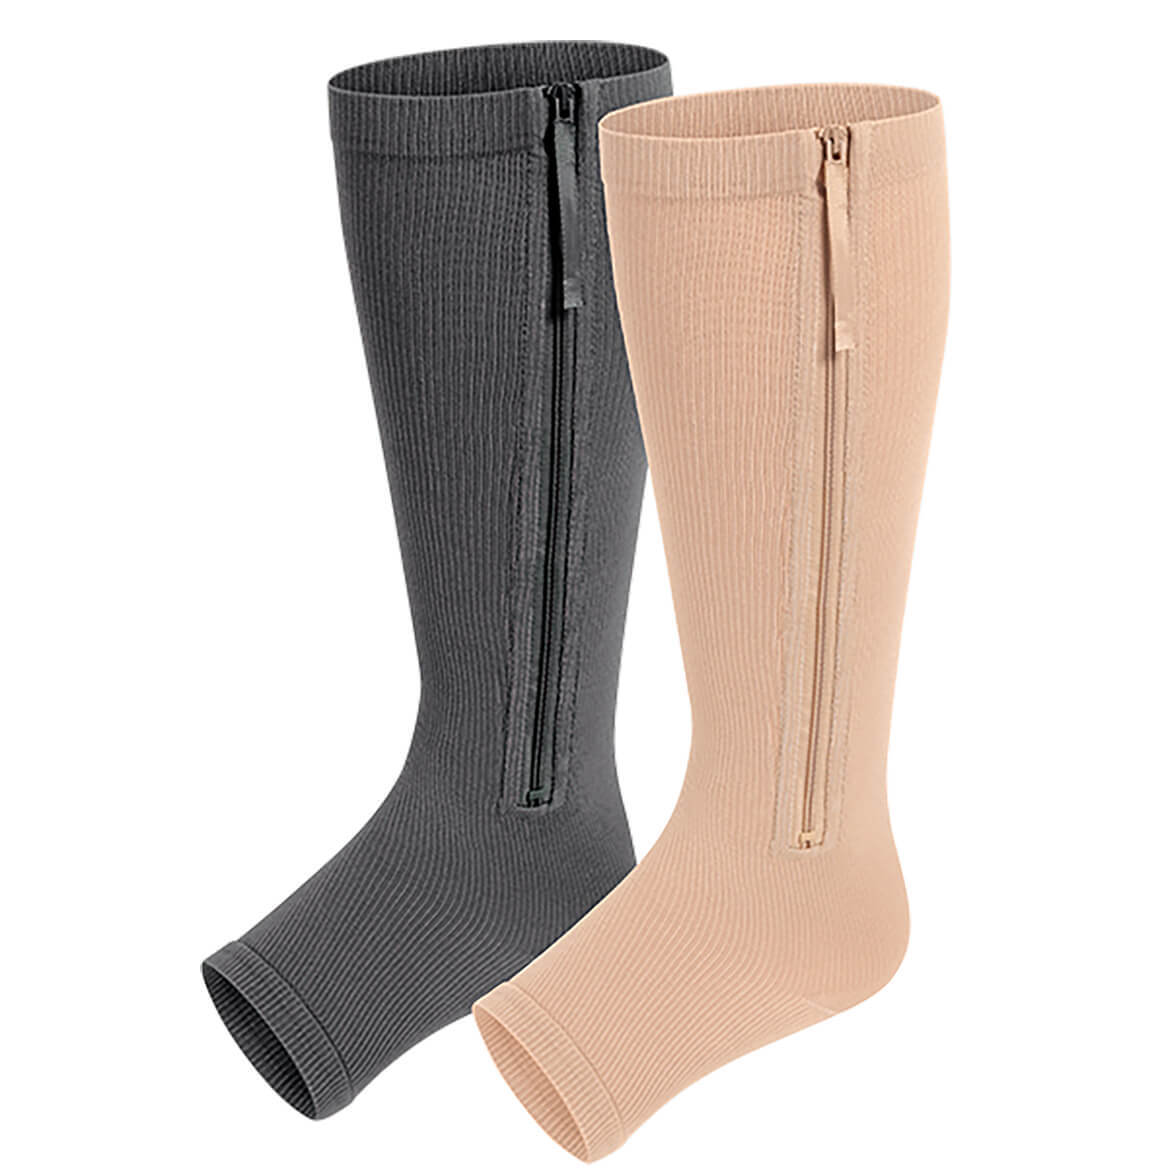 Zippered Compression Stockings-370092